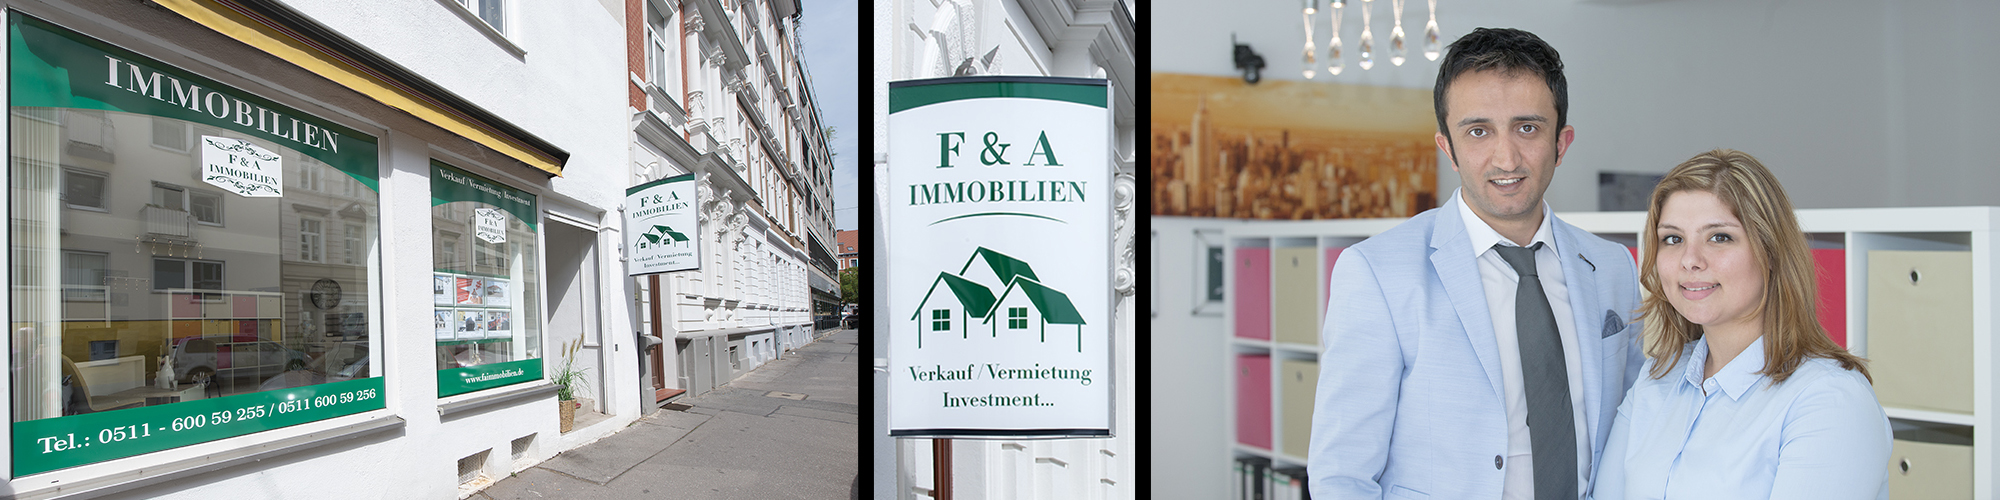 F & A Immobilien